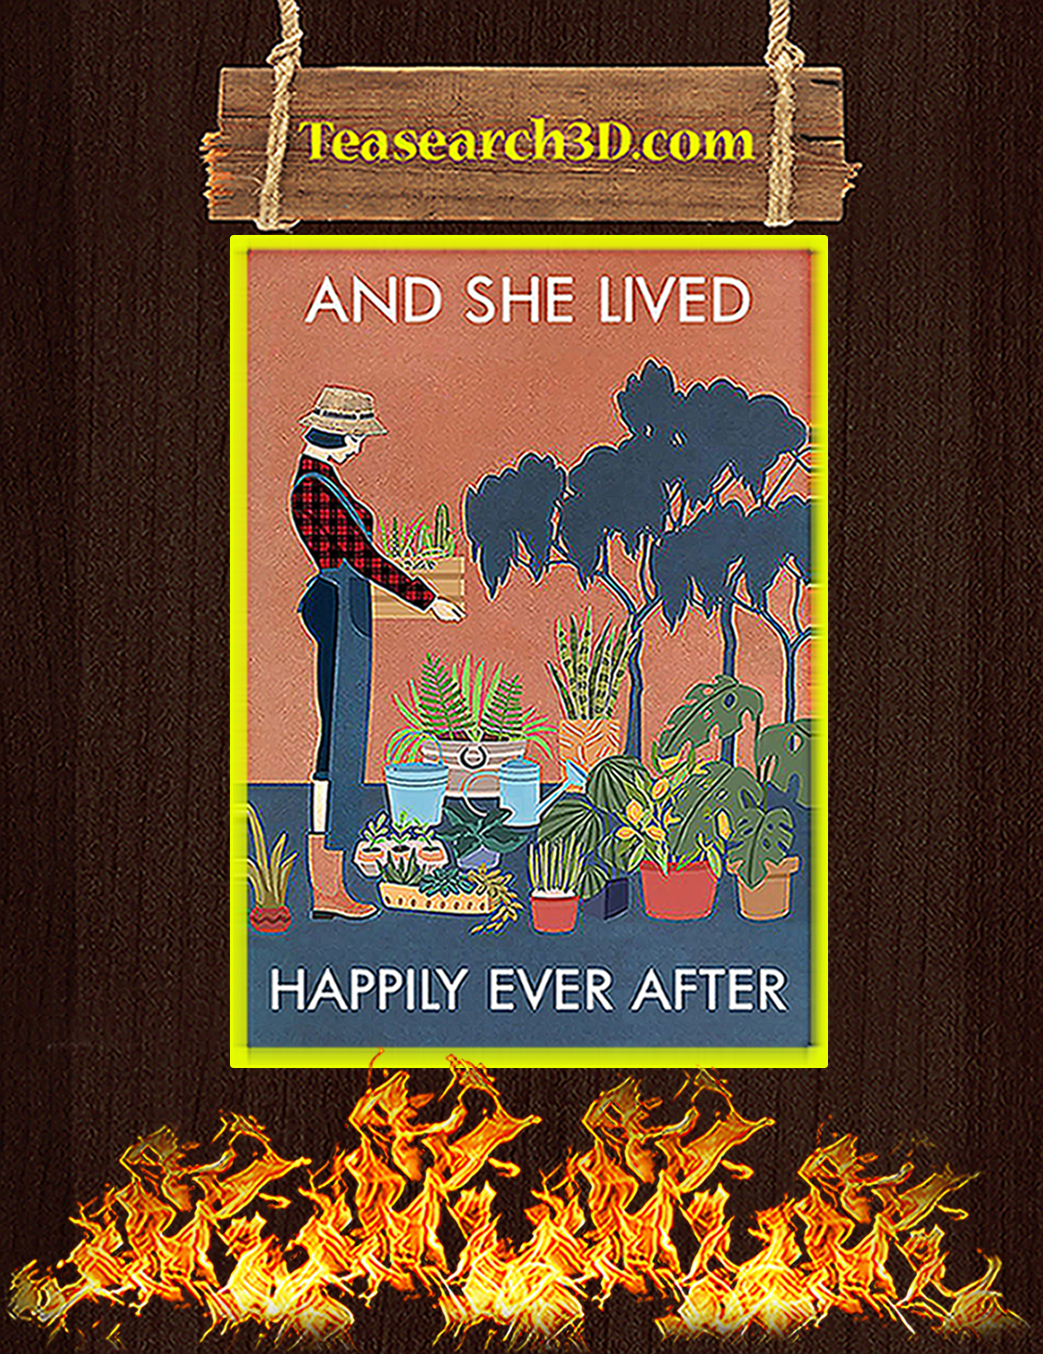 Gardening and she lived happily ever after poster A1